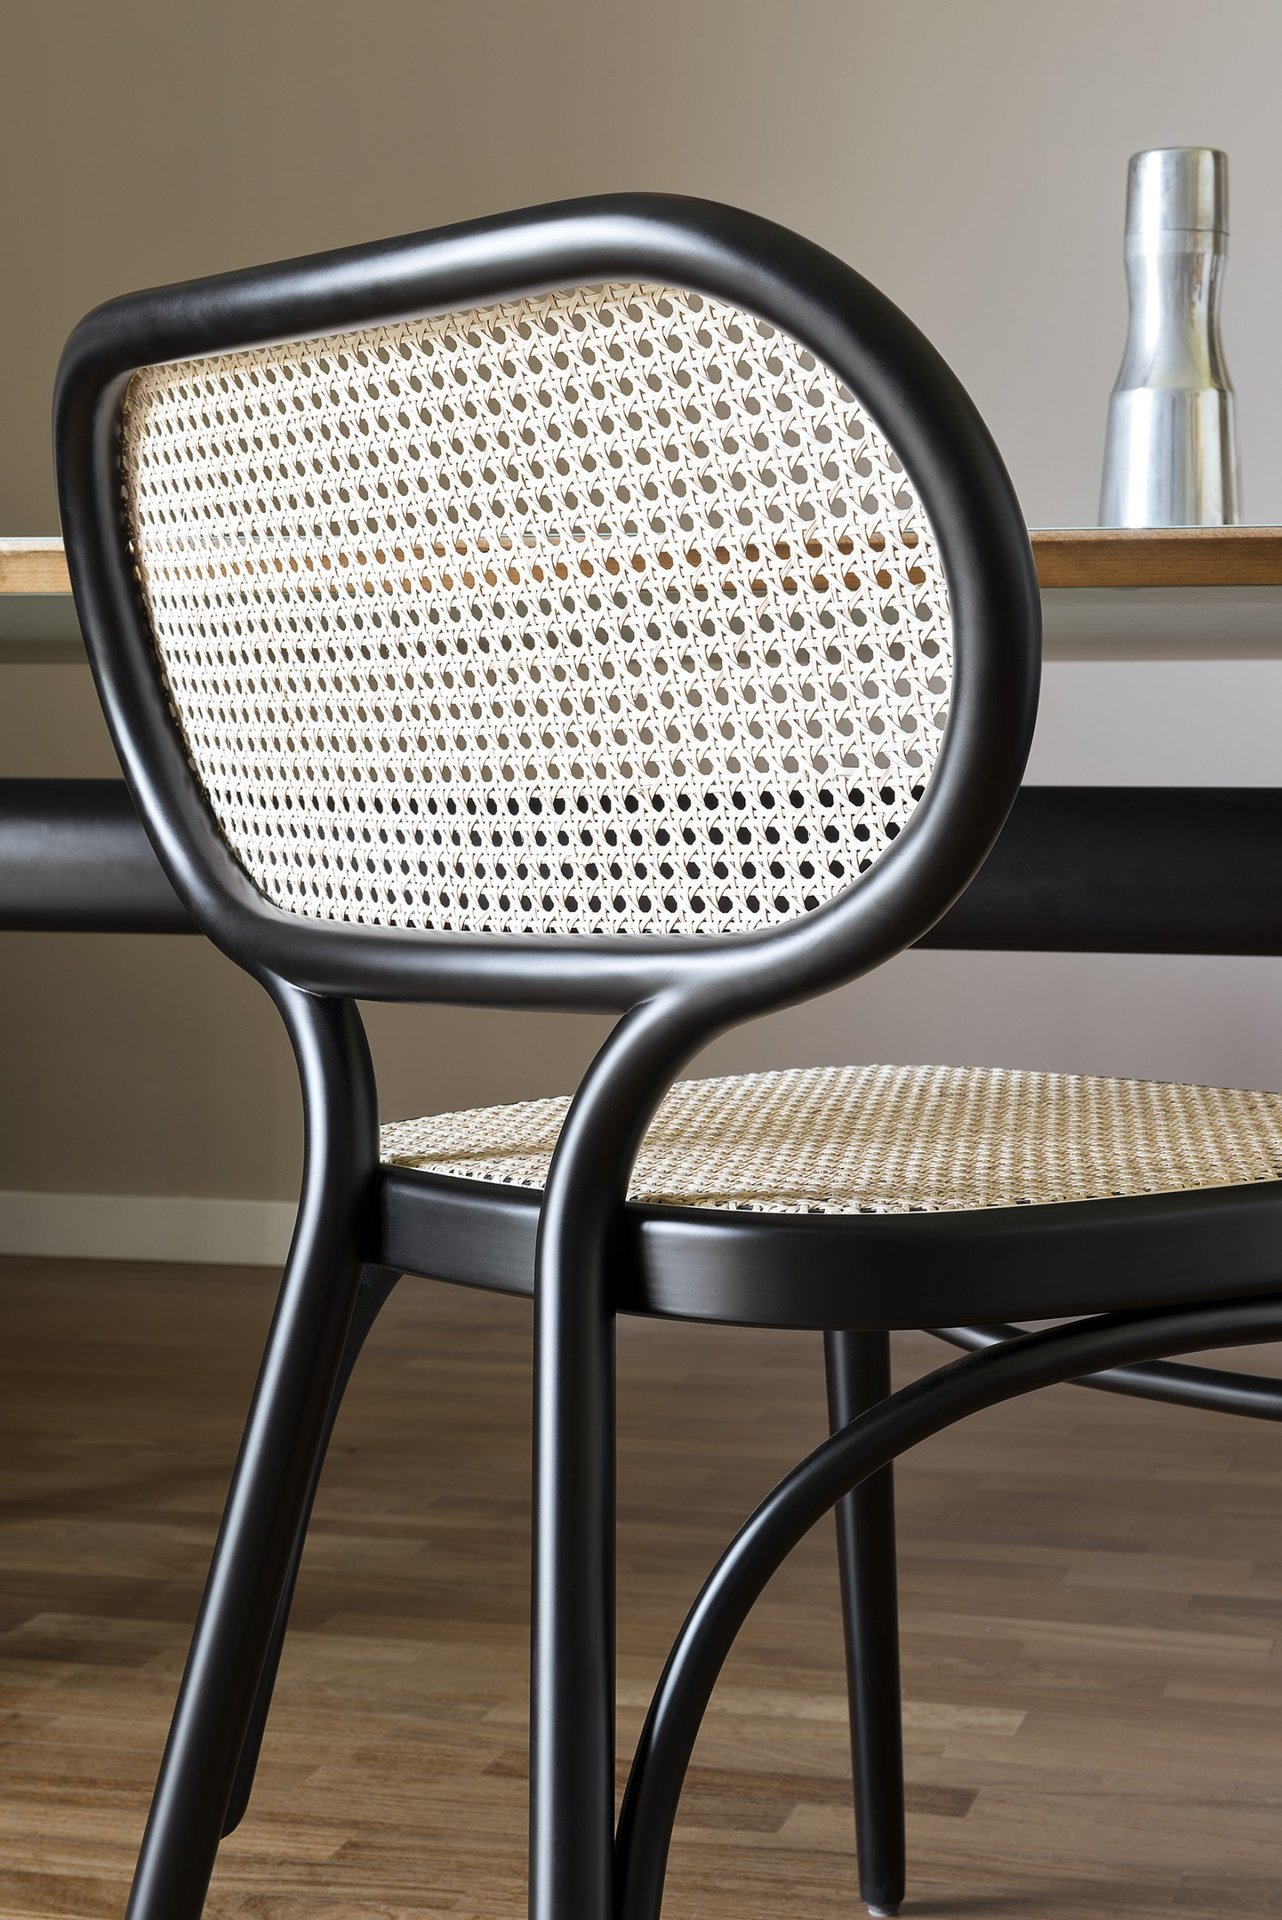 Bodystuhl Upholstered Chair with Woven Cane Backrest - This stunning chair boasts the virtuous touch of beechwood curved with steam. The result is a sinuous silhouette with a generous seat and an ergonomic backrest, both in exquisite Viennese straw. The colour of the textured straw strikingly contrasts with the black lacquer finish of the wood. Either by a modern table or combined with the Lehnstuh Lounge Chair for a cohesive look, this piece will add a sophisticated and timeless touch to contemporary home. | Matter of Stuff